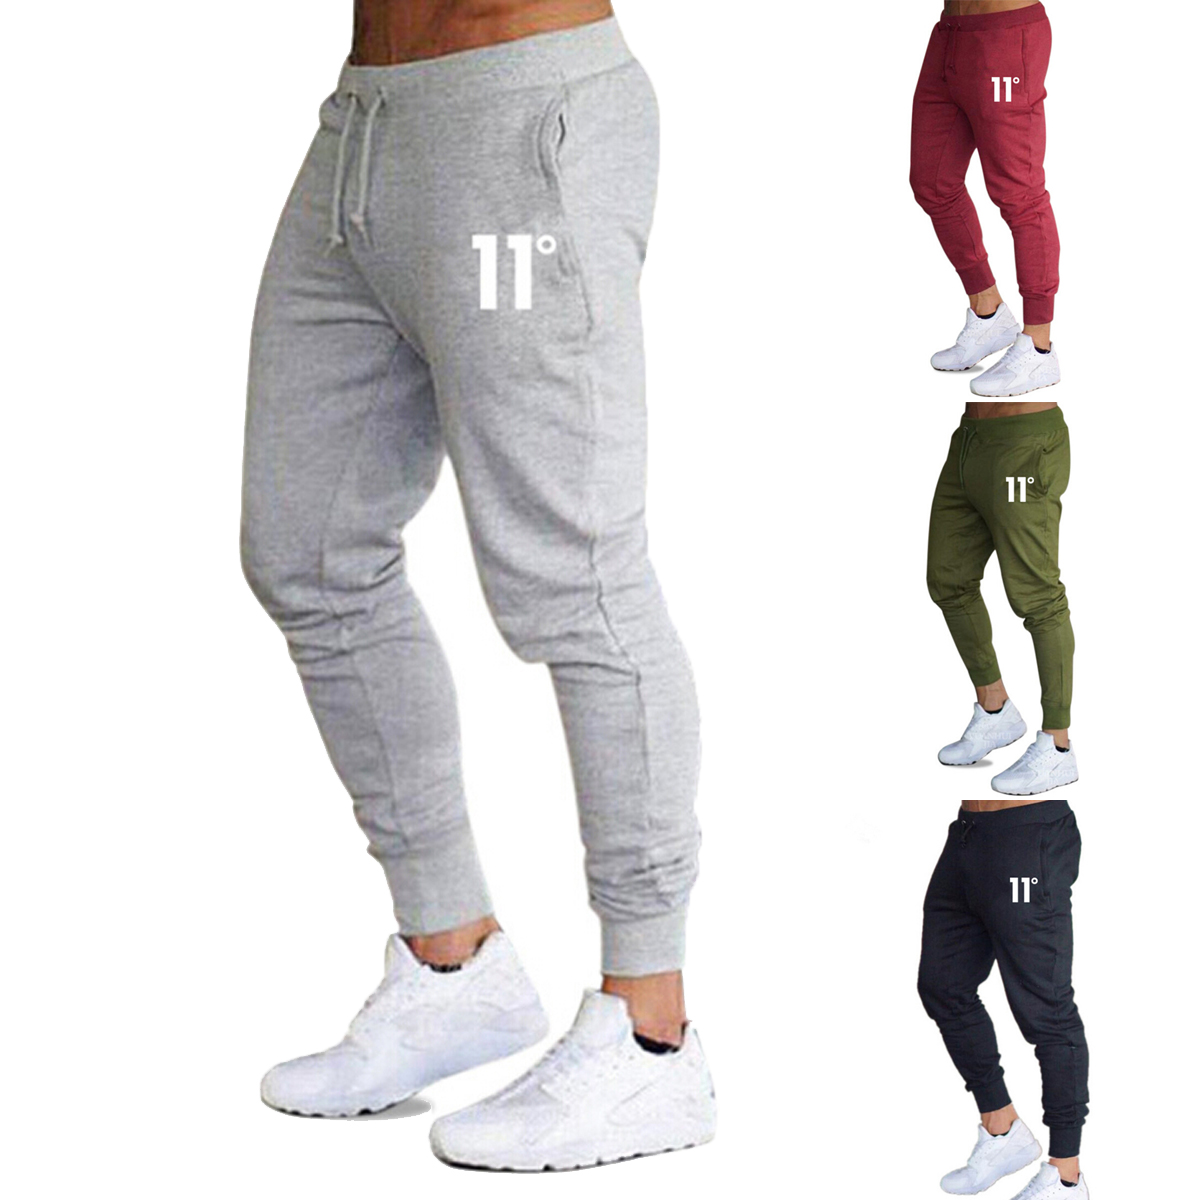 2019 Brand New Mens Casual Slim Fit Tracksuit Sports Gym Skinny Joggers Sweat Pants Trousers